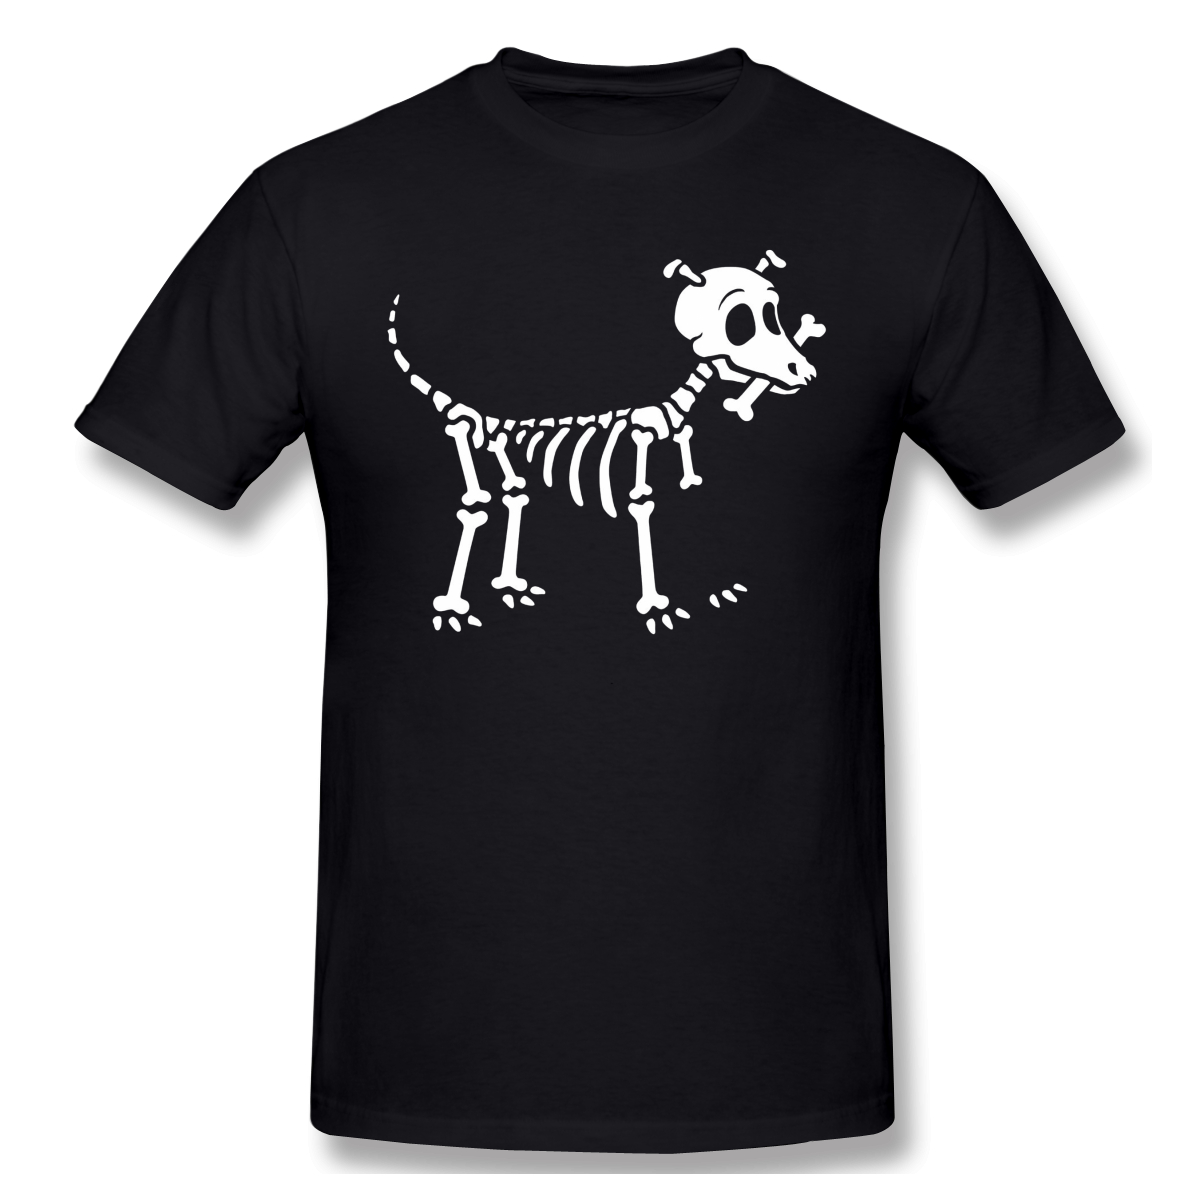 BONE LOVER T-Shirt Men Birthday Gifts Short Sleeves Funny Tees O Neck 100% Cotton Clothes Humor T Shirt